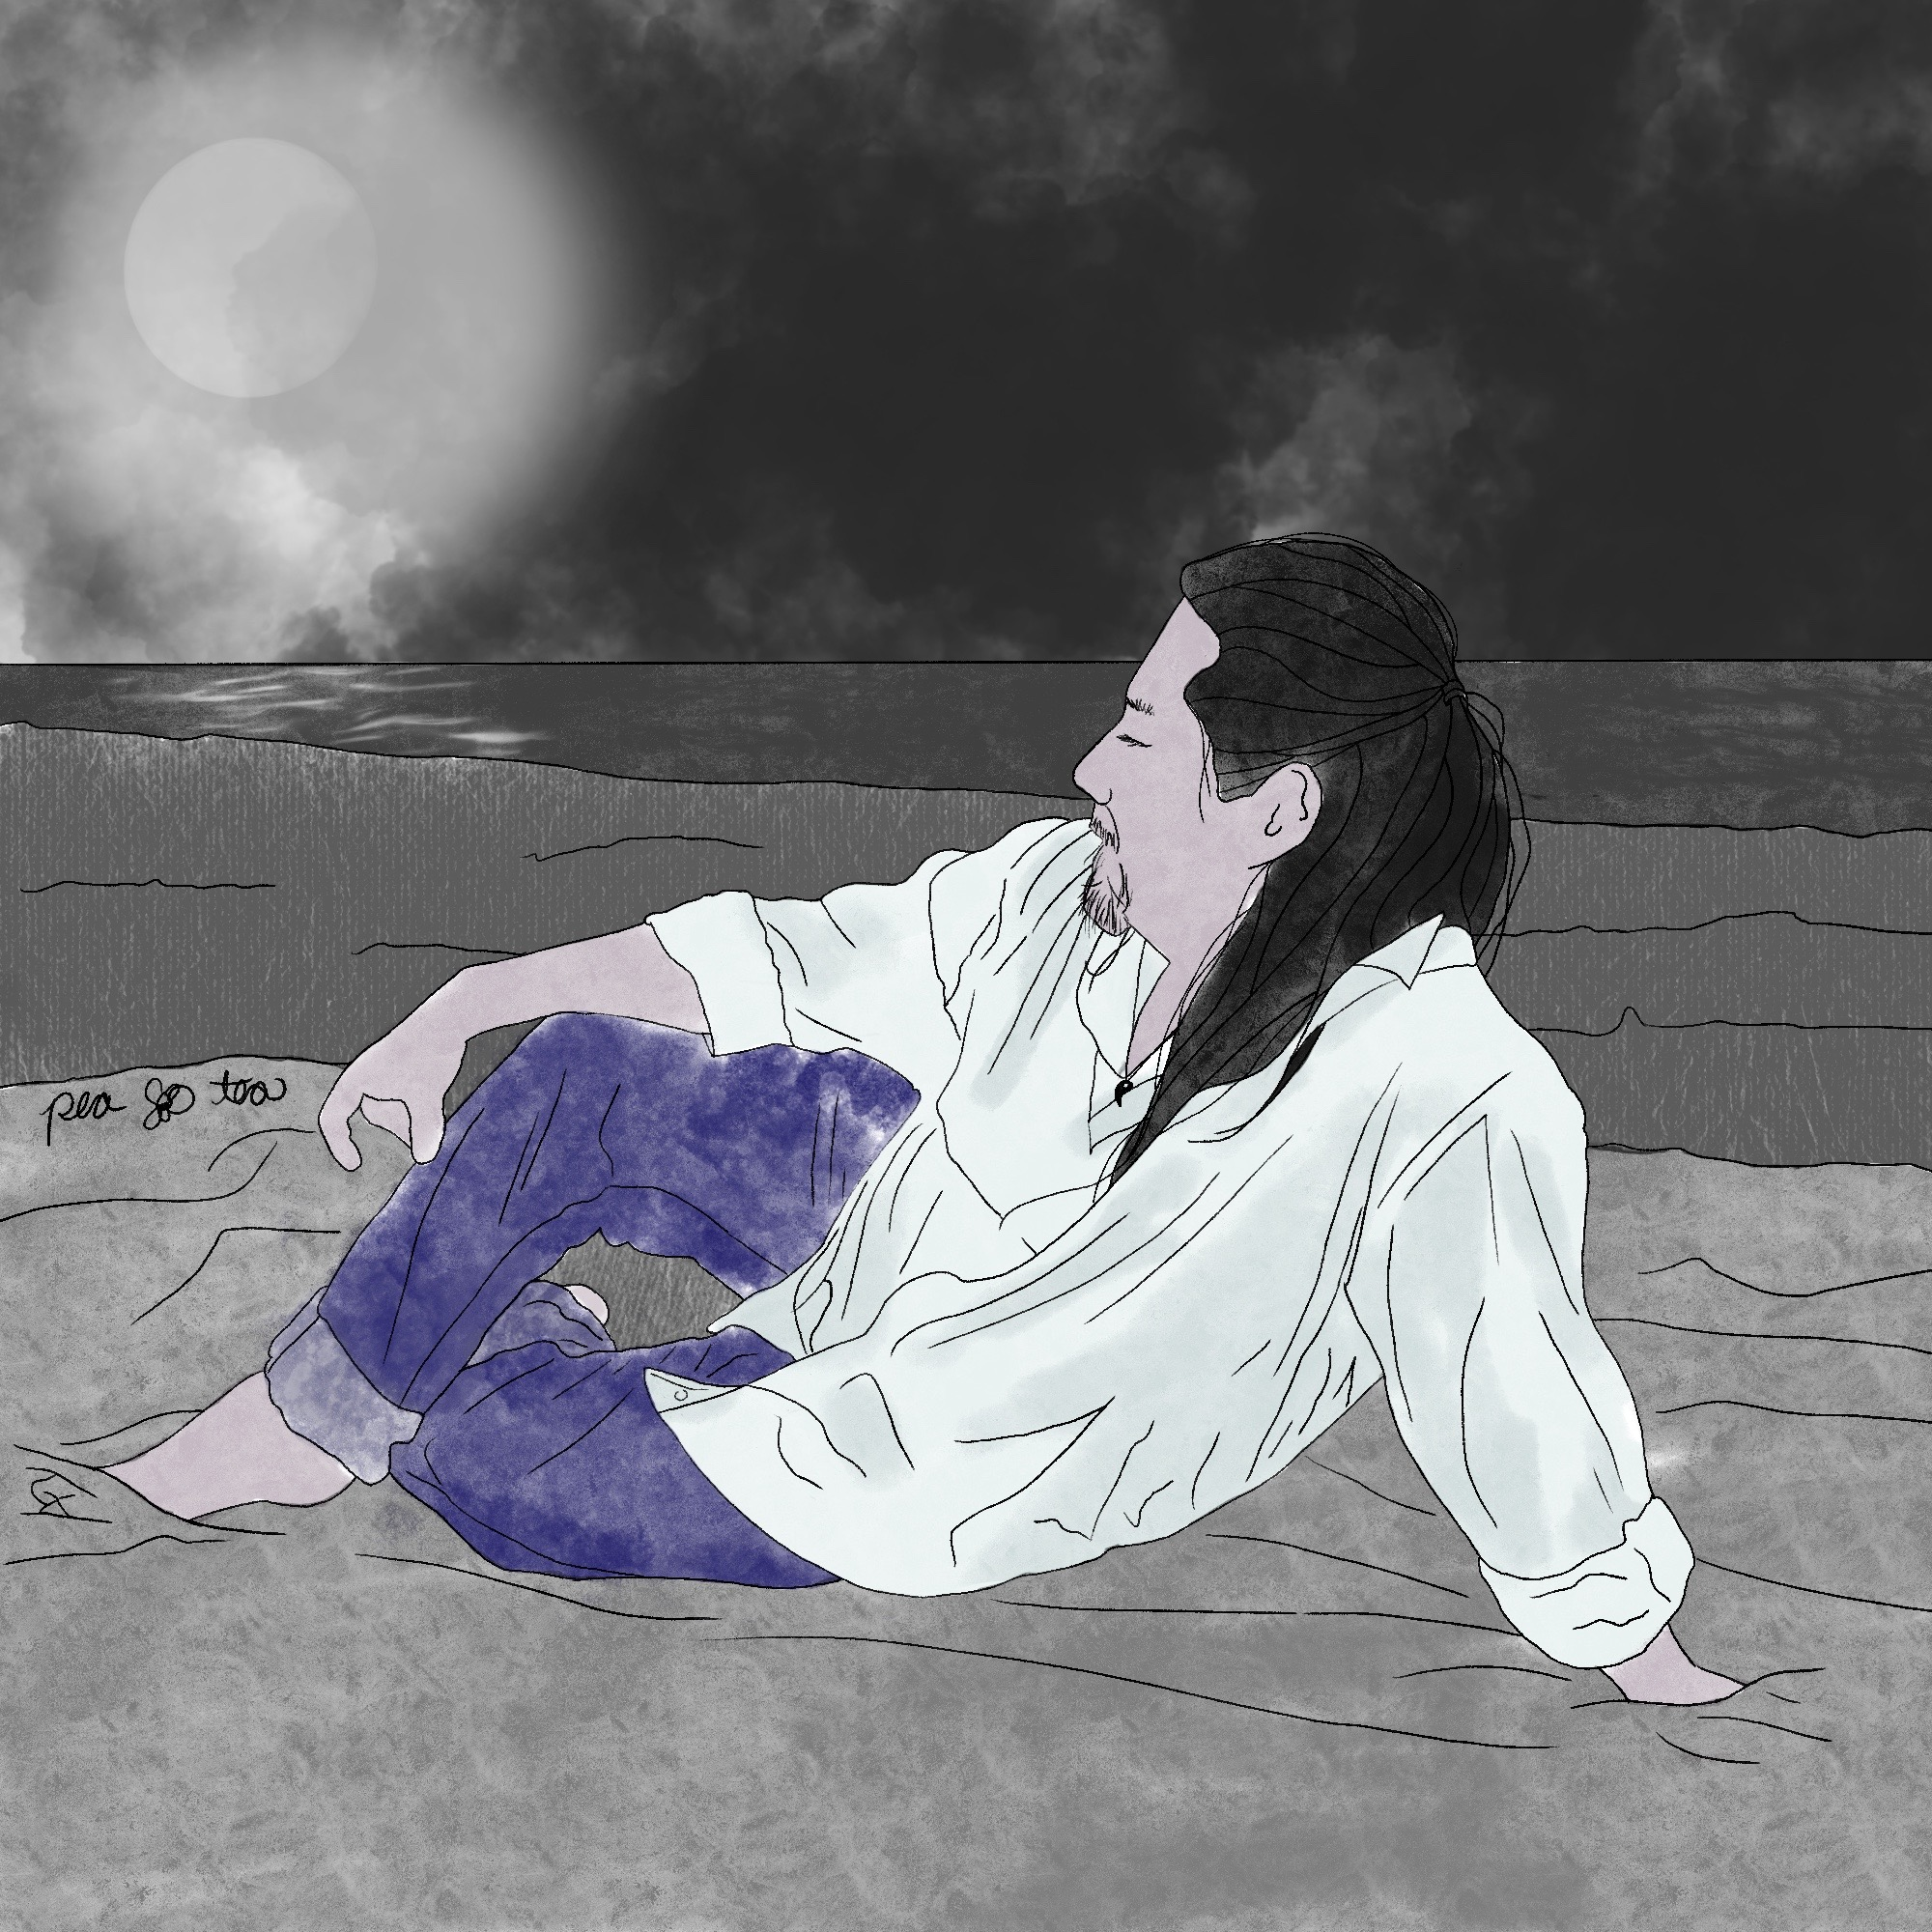 A sketch of a man with long black hair, wearing blue jeans and a white button down shirt untucked, sitting at ease on a beach under the full moon.